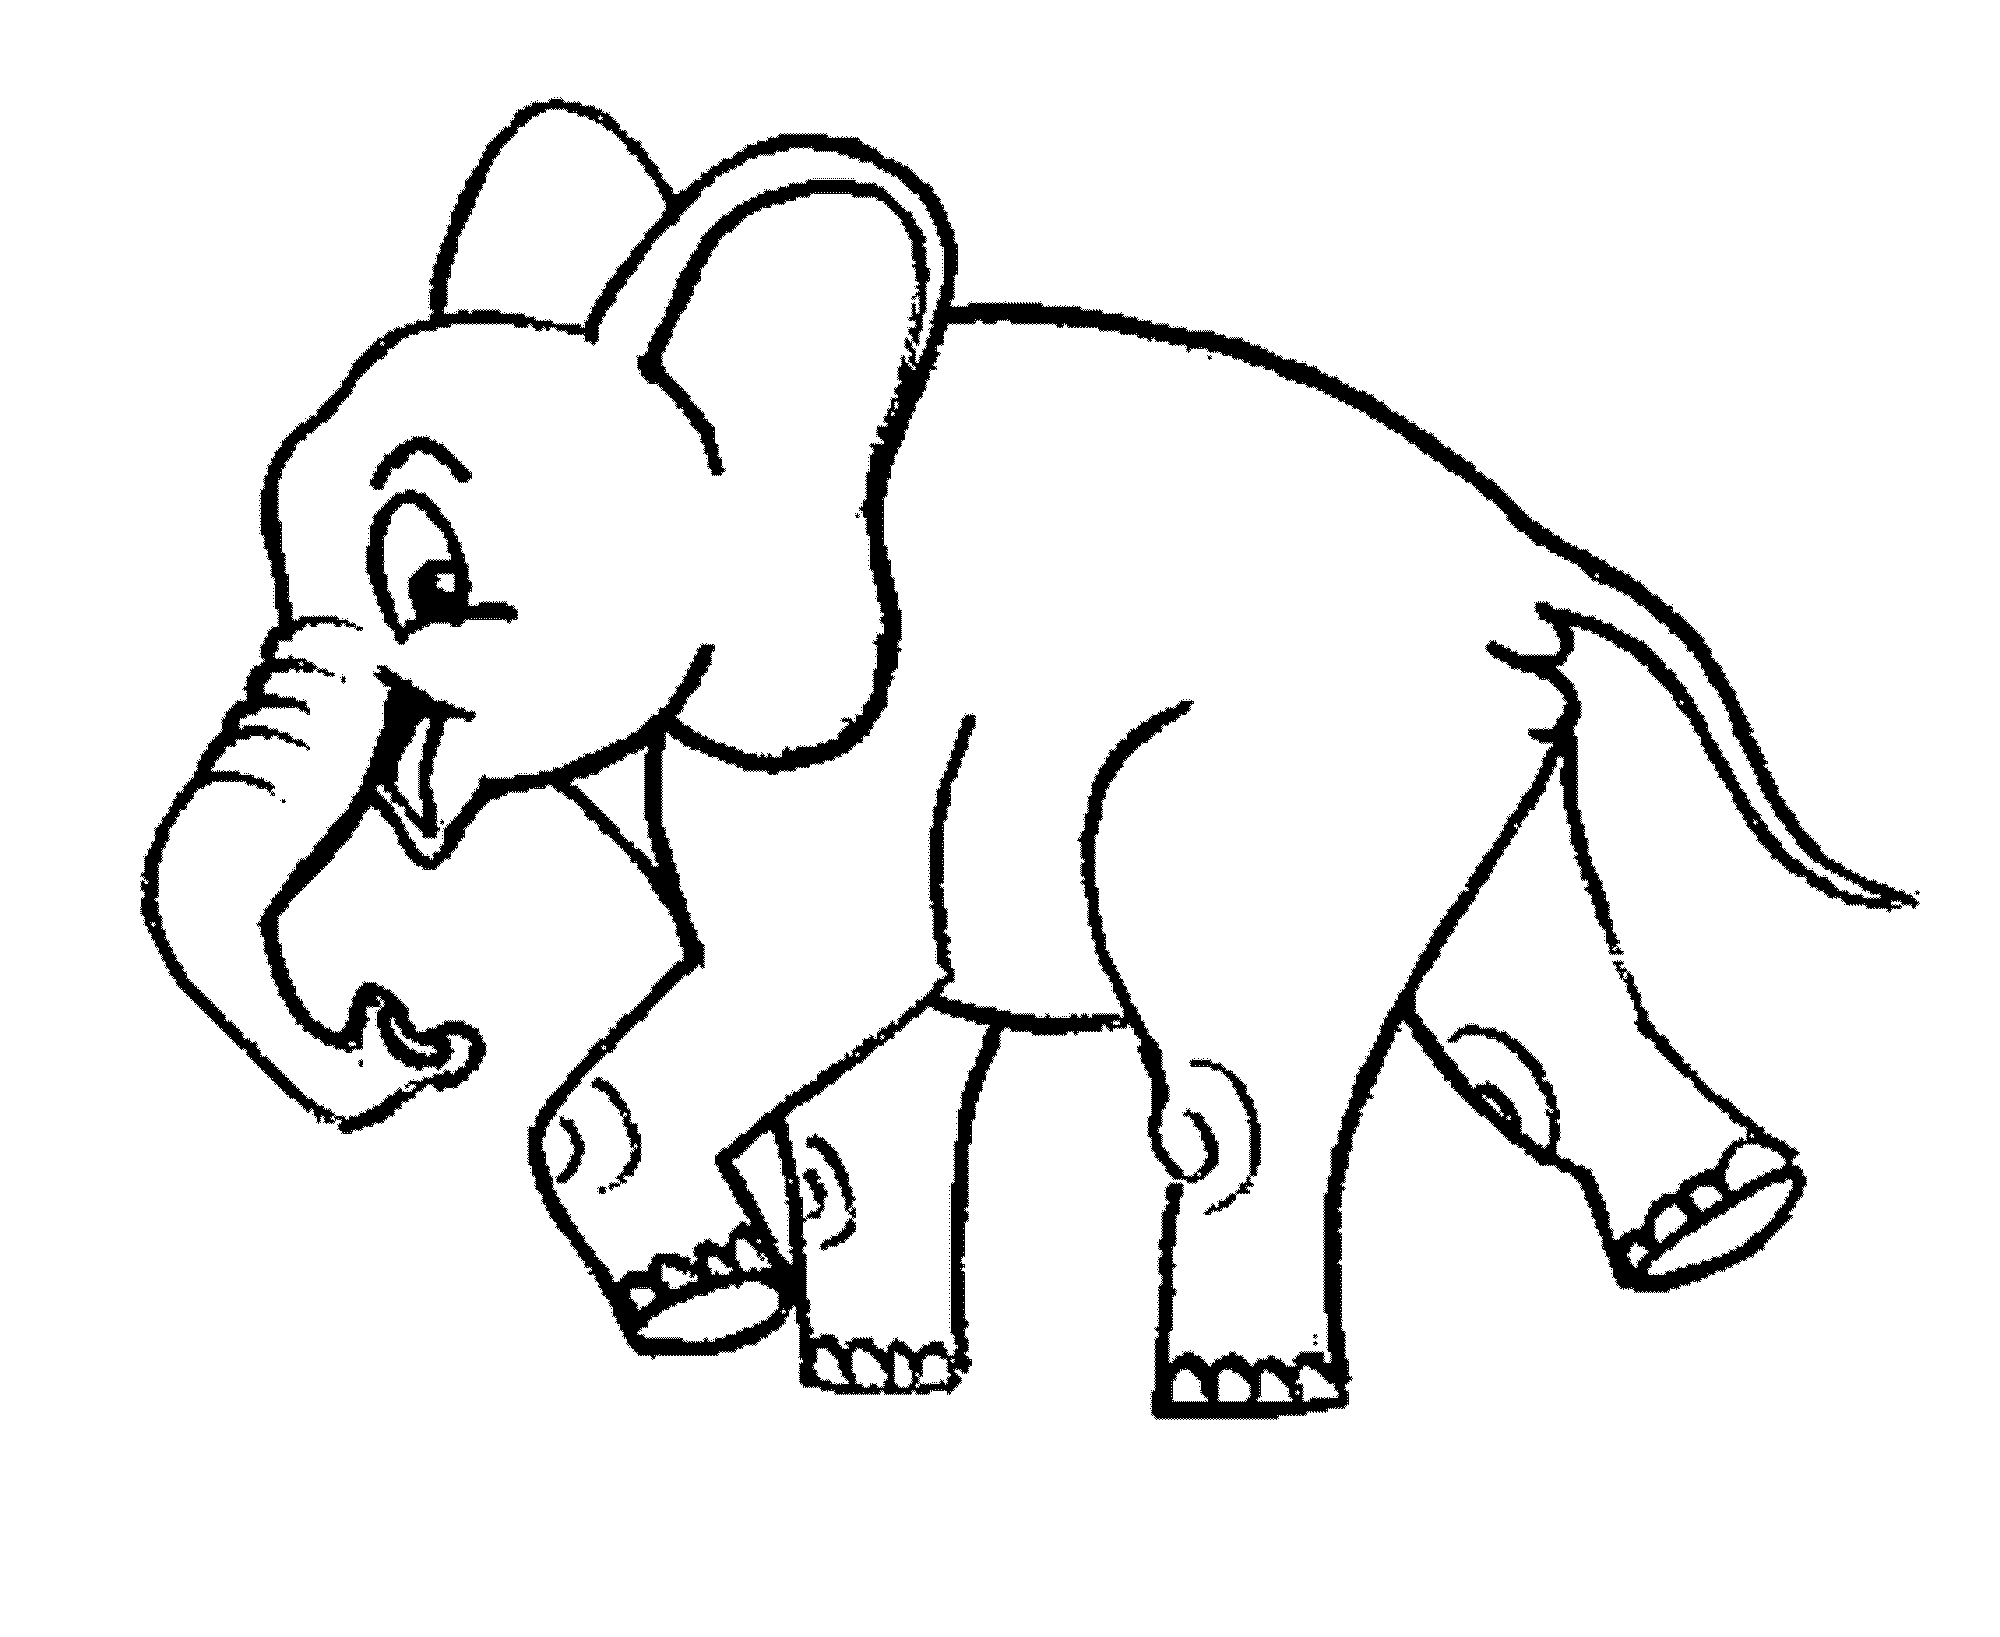 2000x1637 Cute Elephant Coloring Pages